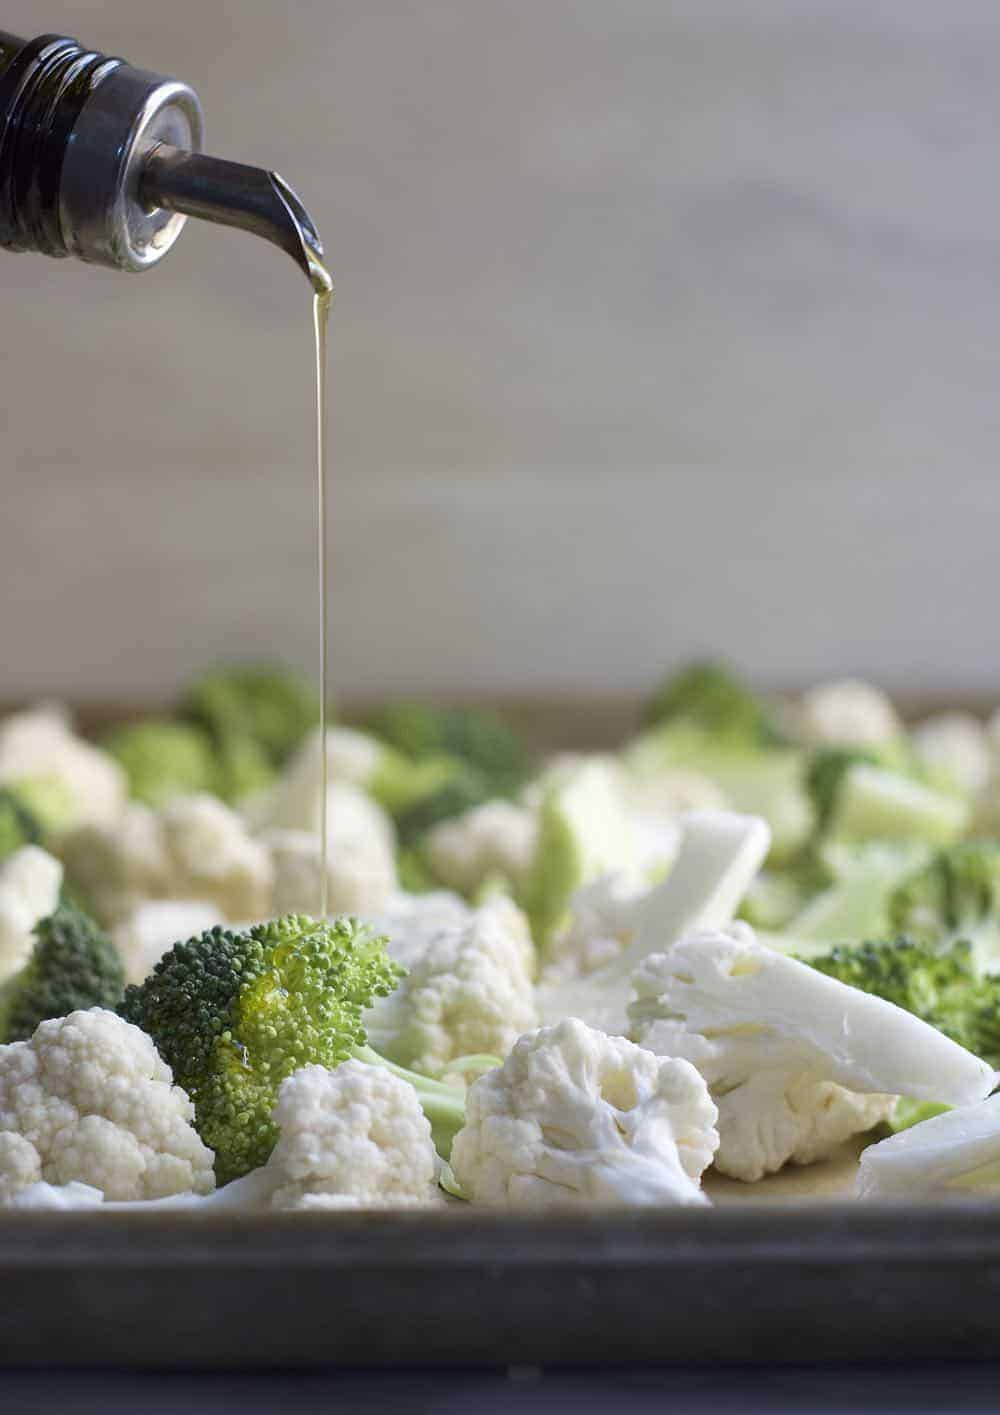 Drizzling Olive Oil on raw Broccoli and Cauliflower